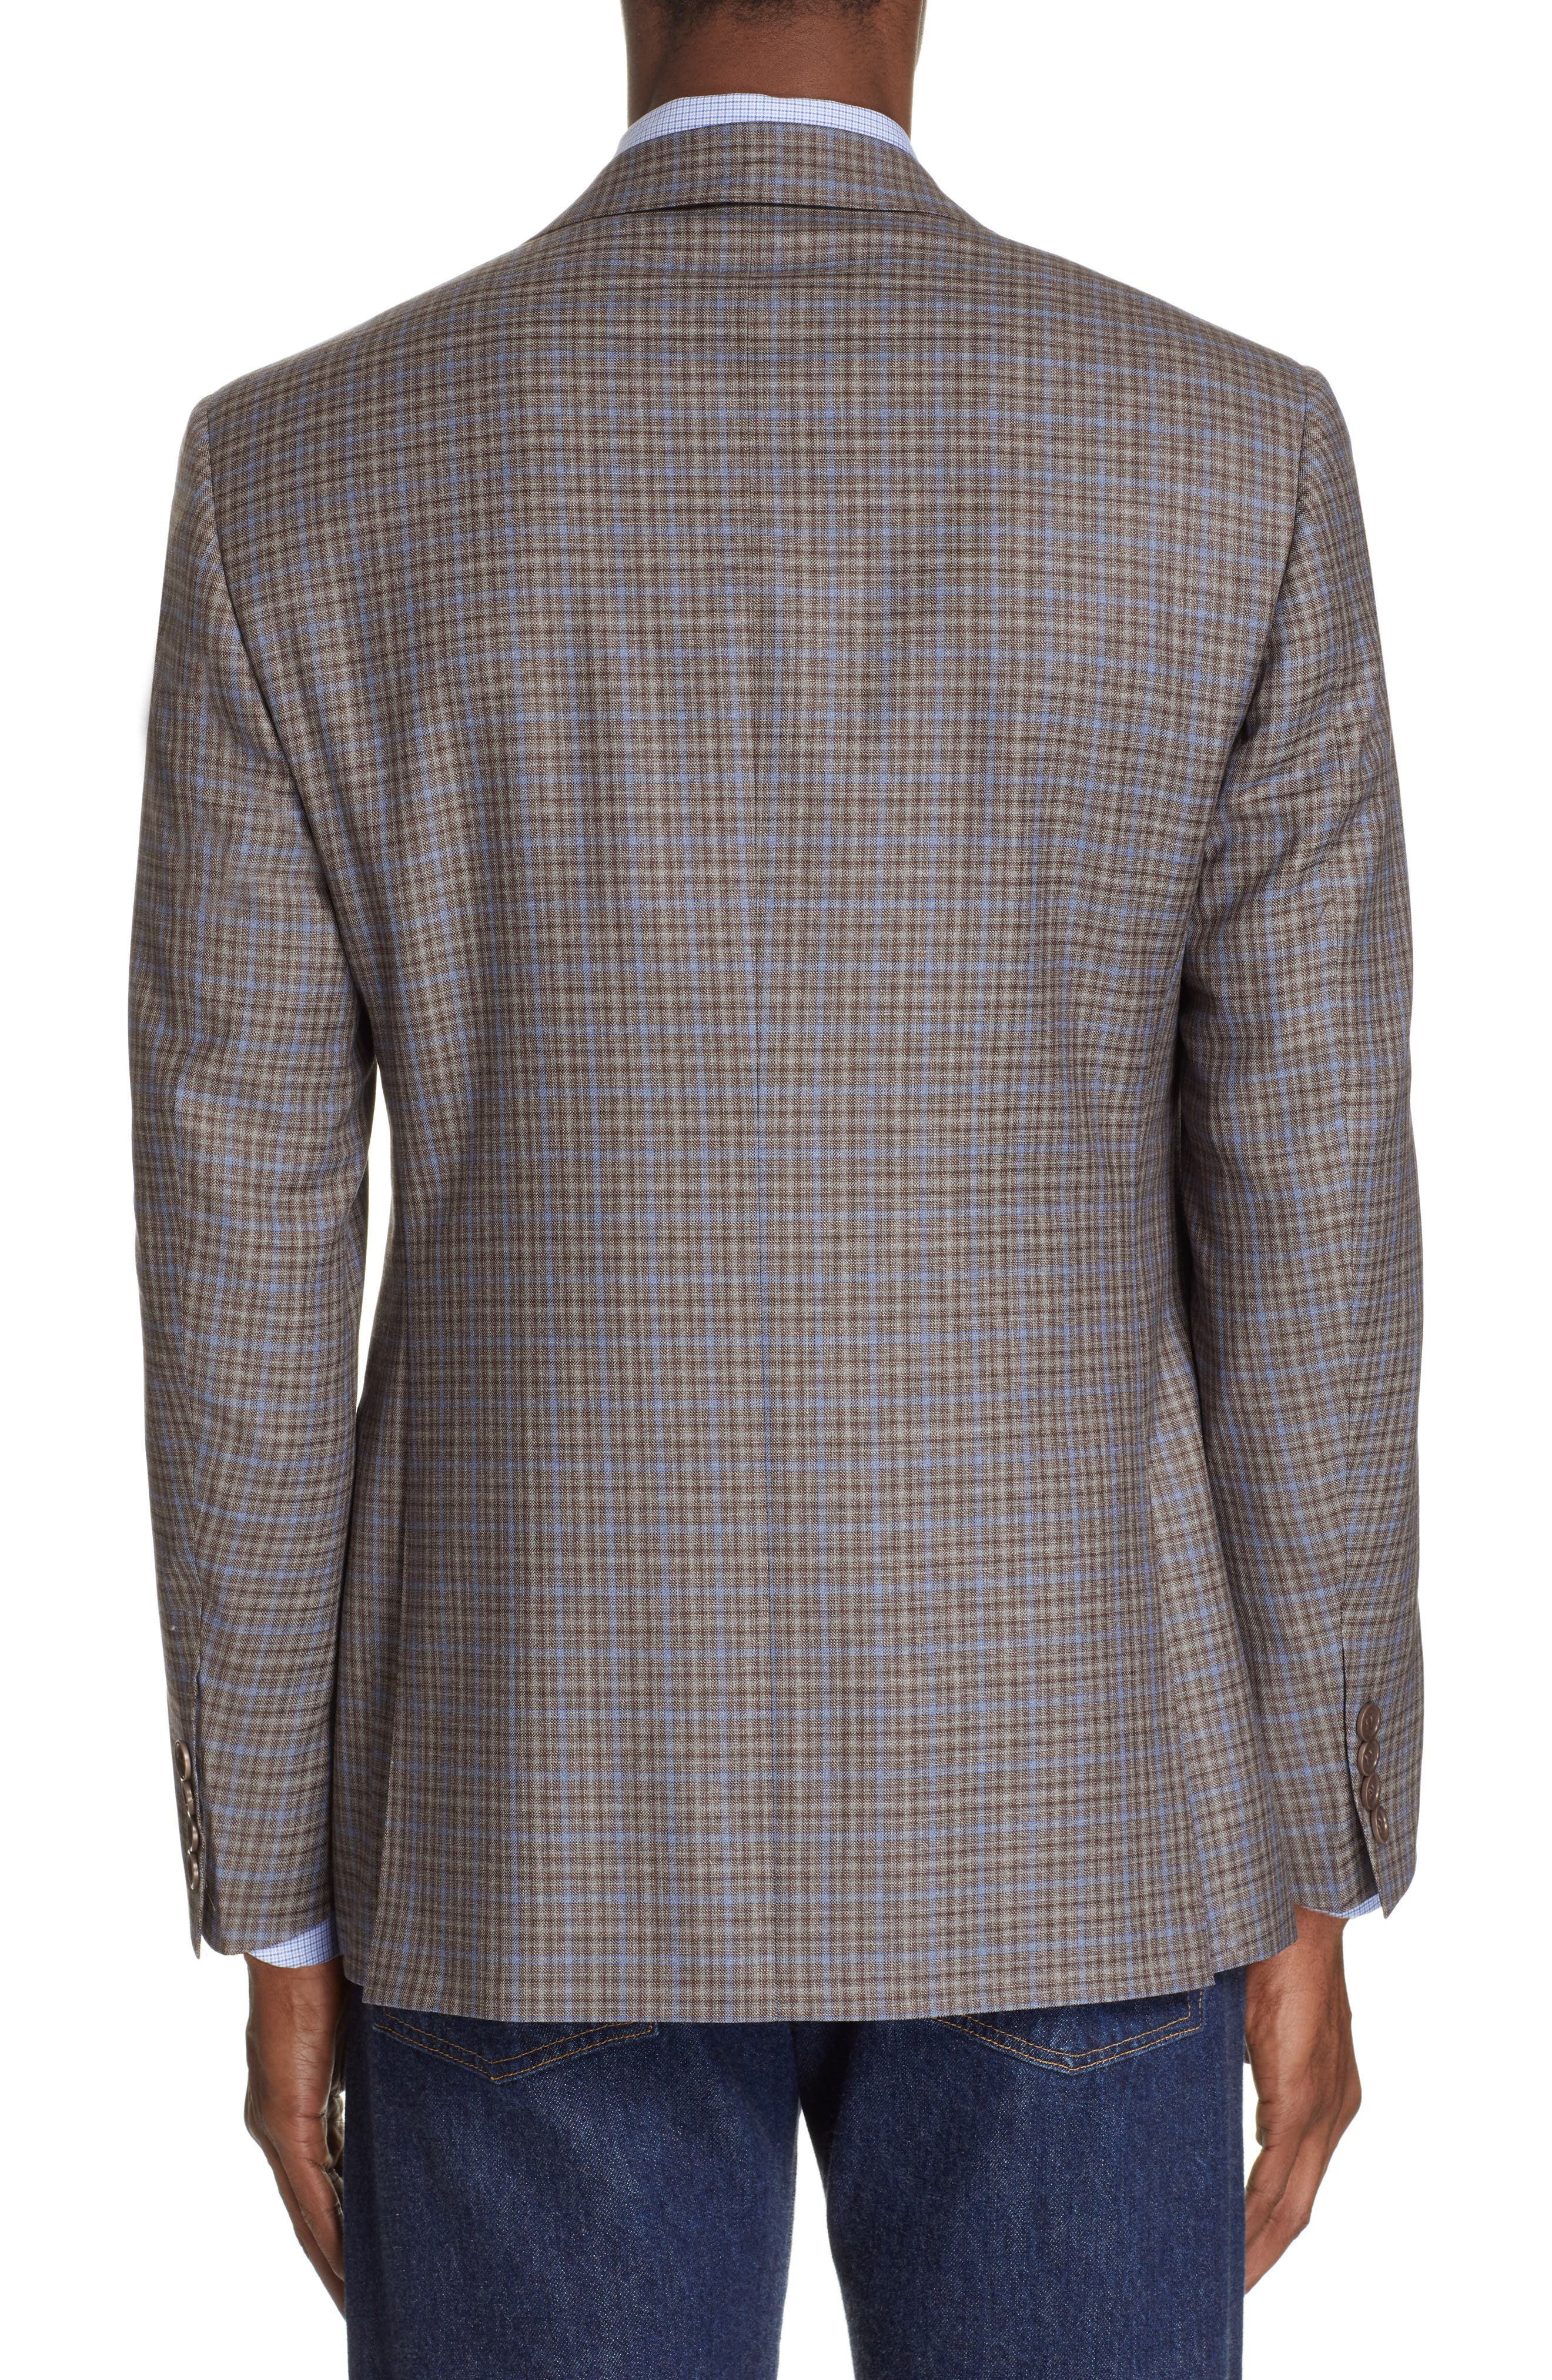 CANALI, Sienna Classic Fit Plaid Wool Sport Coat, Alternate thumbnail 2, color, BROWN